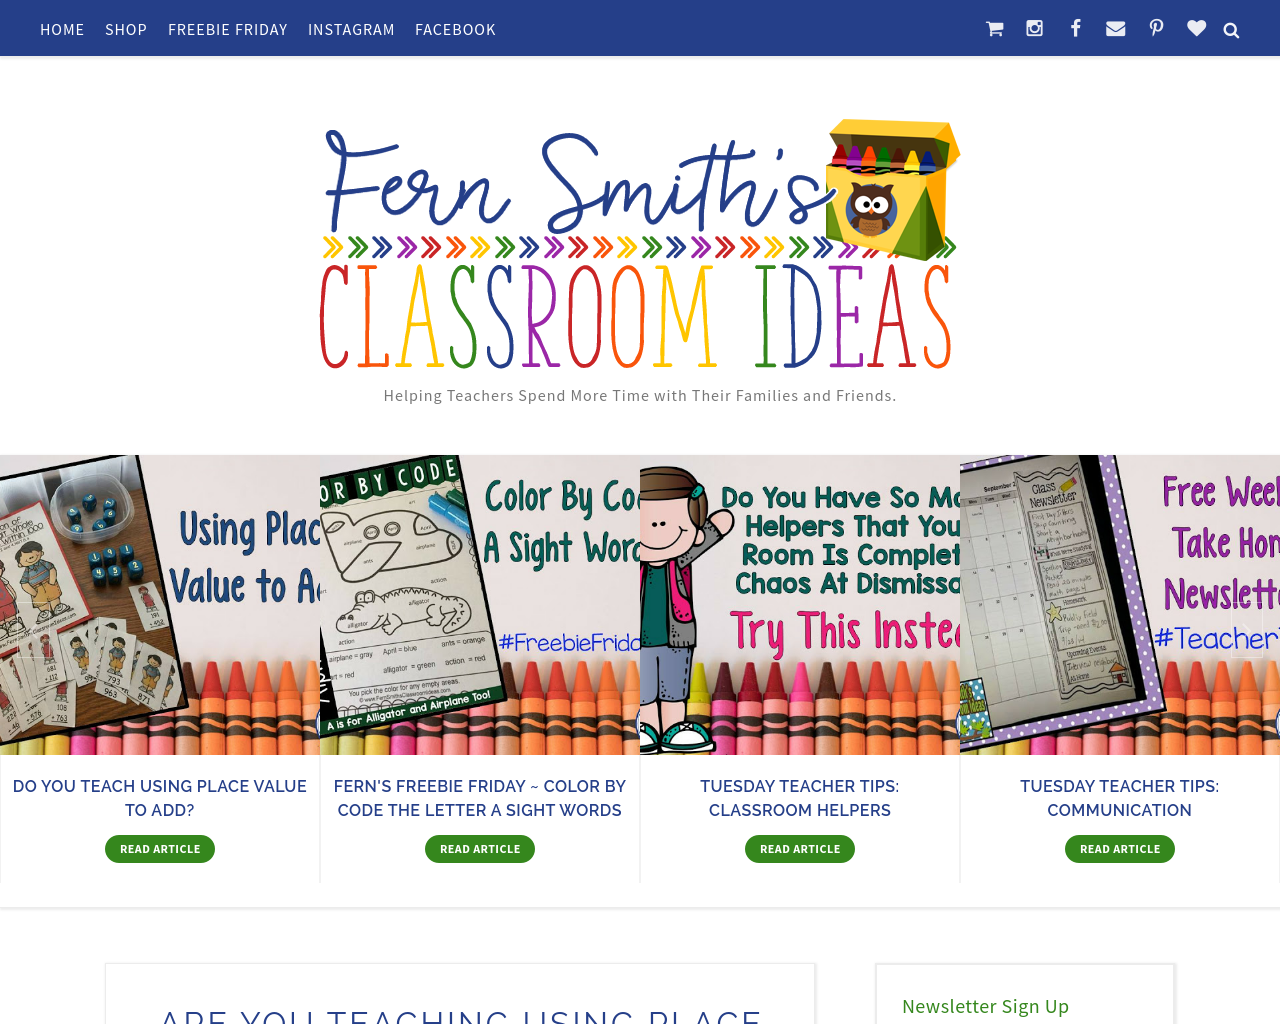 Fern-Smith's-Classroom-Ideas-Advertising-Reviews-Pricing